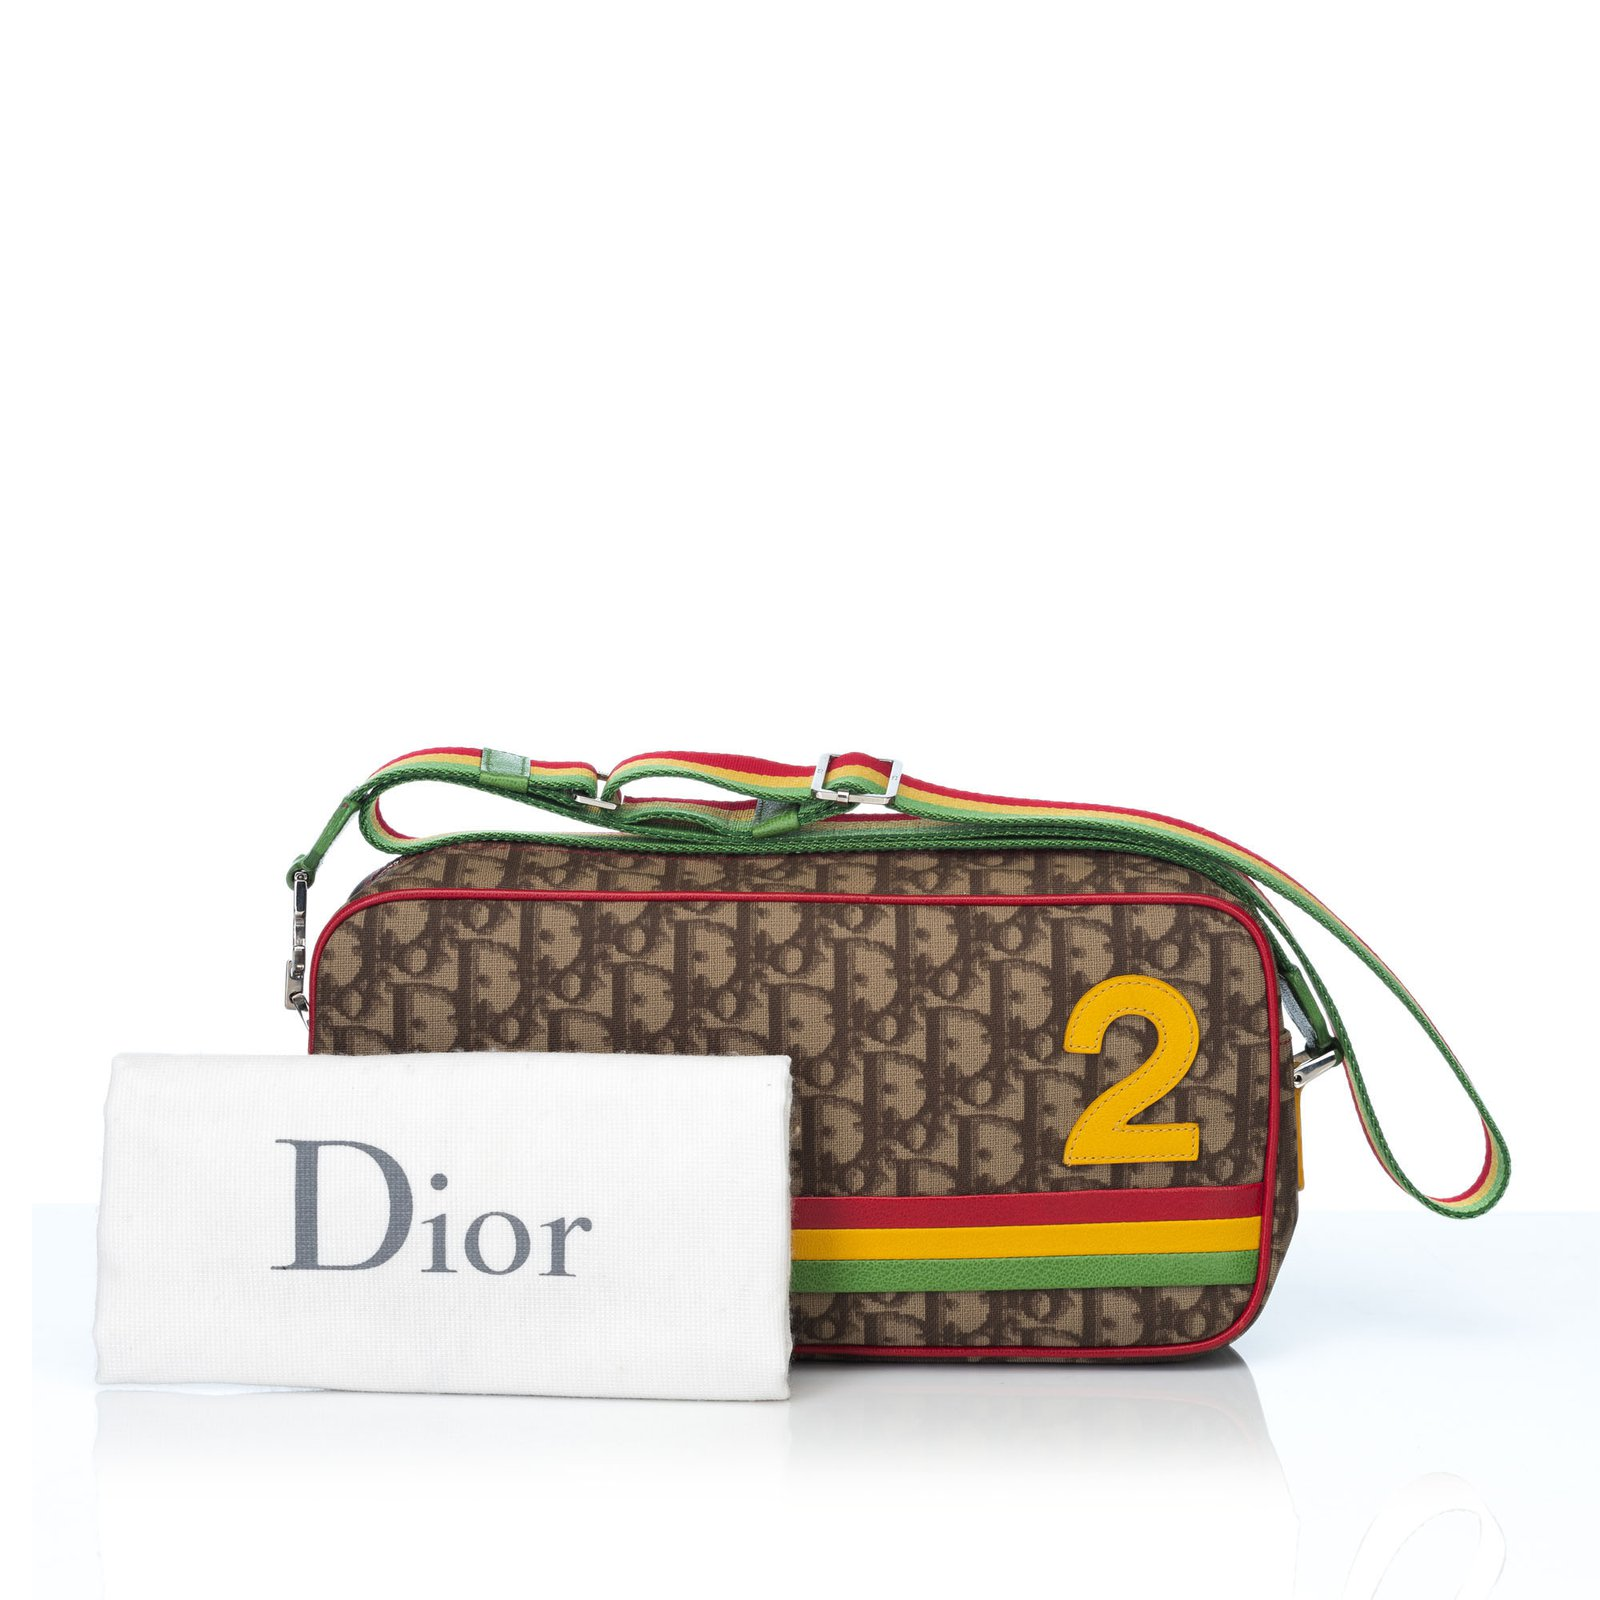 Dior Oblique Rasta Crossbody Bag Handbags Leather 4dbbf75140a19